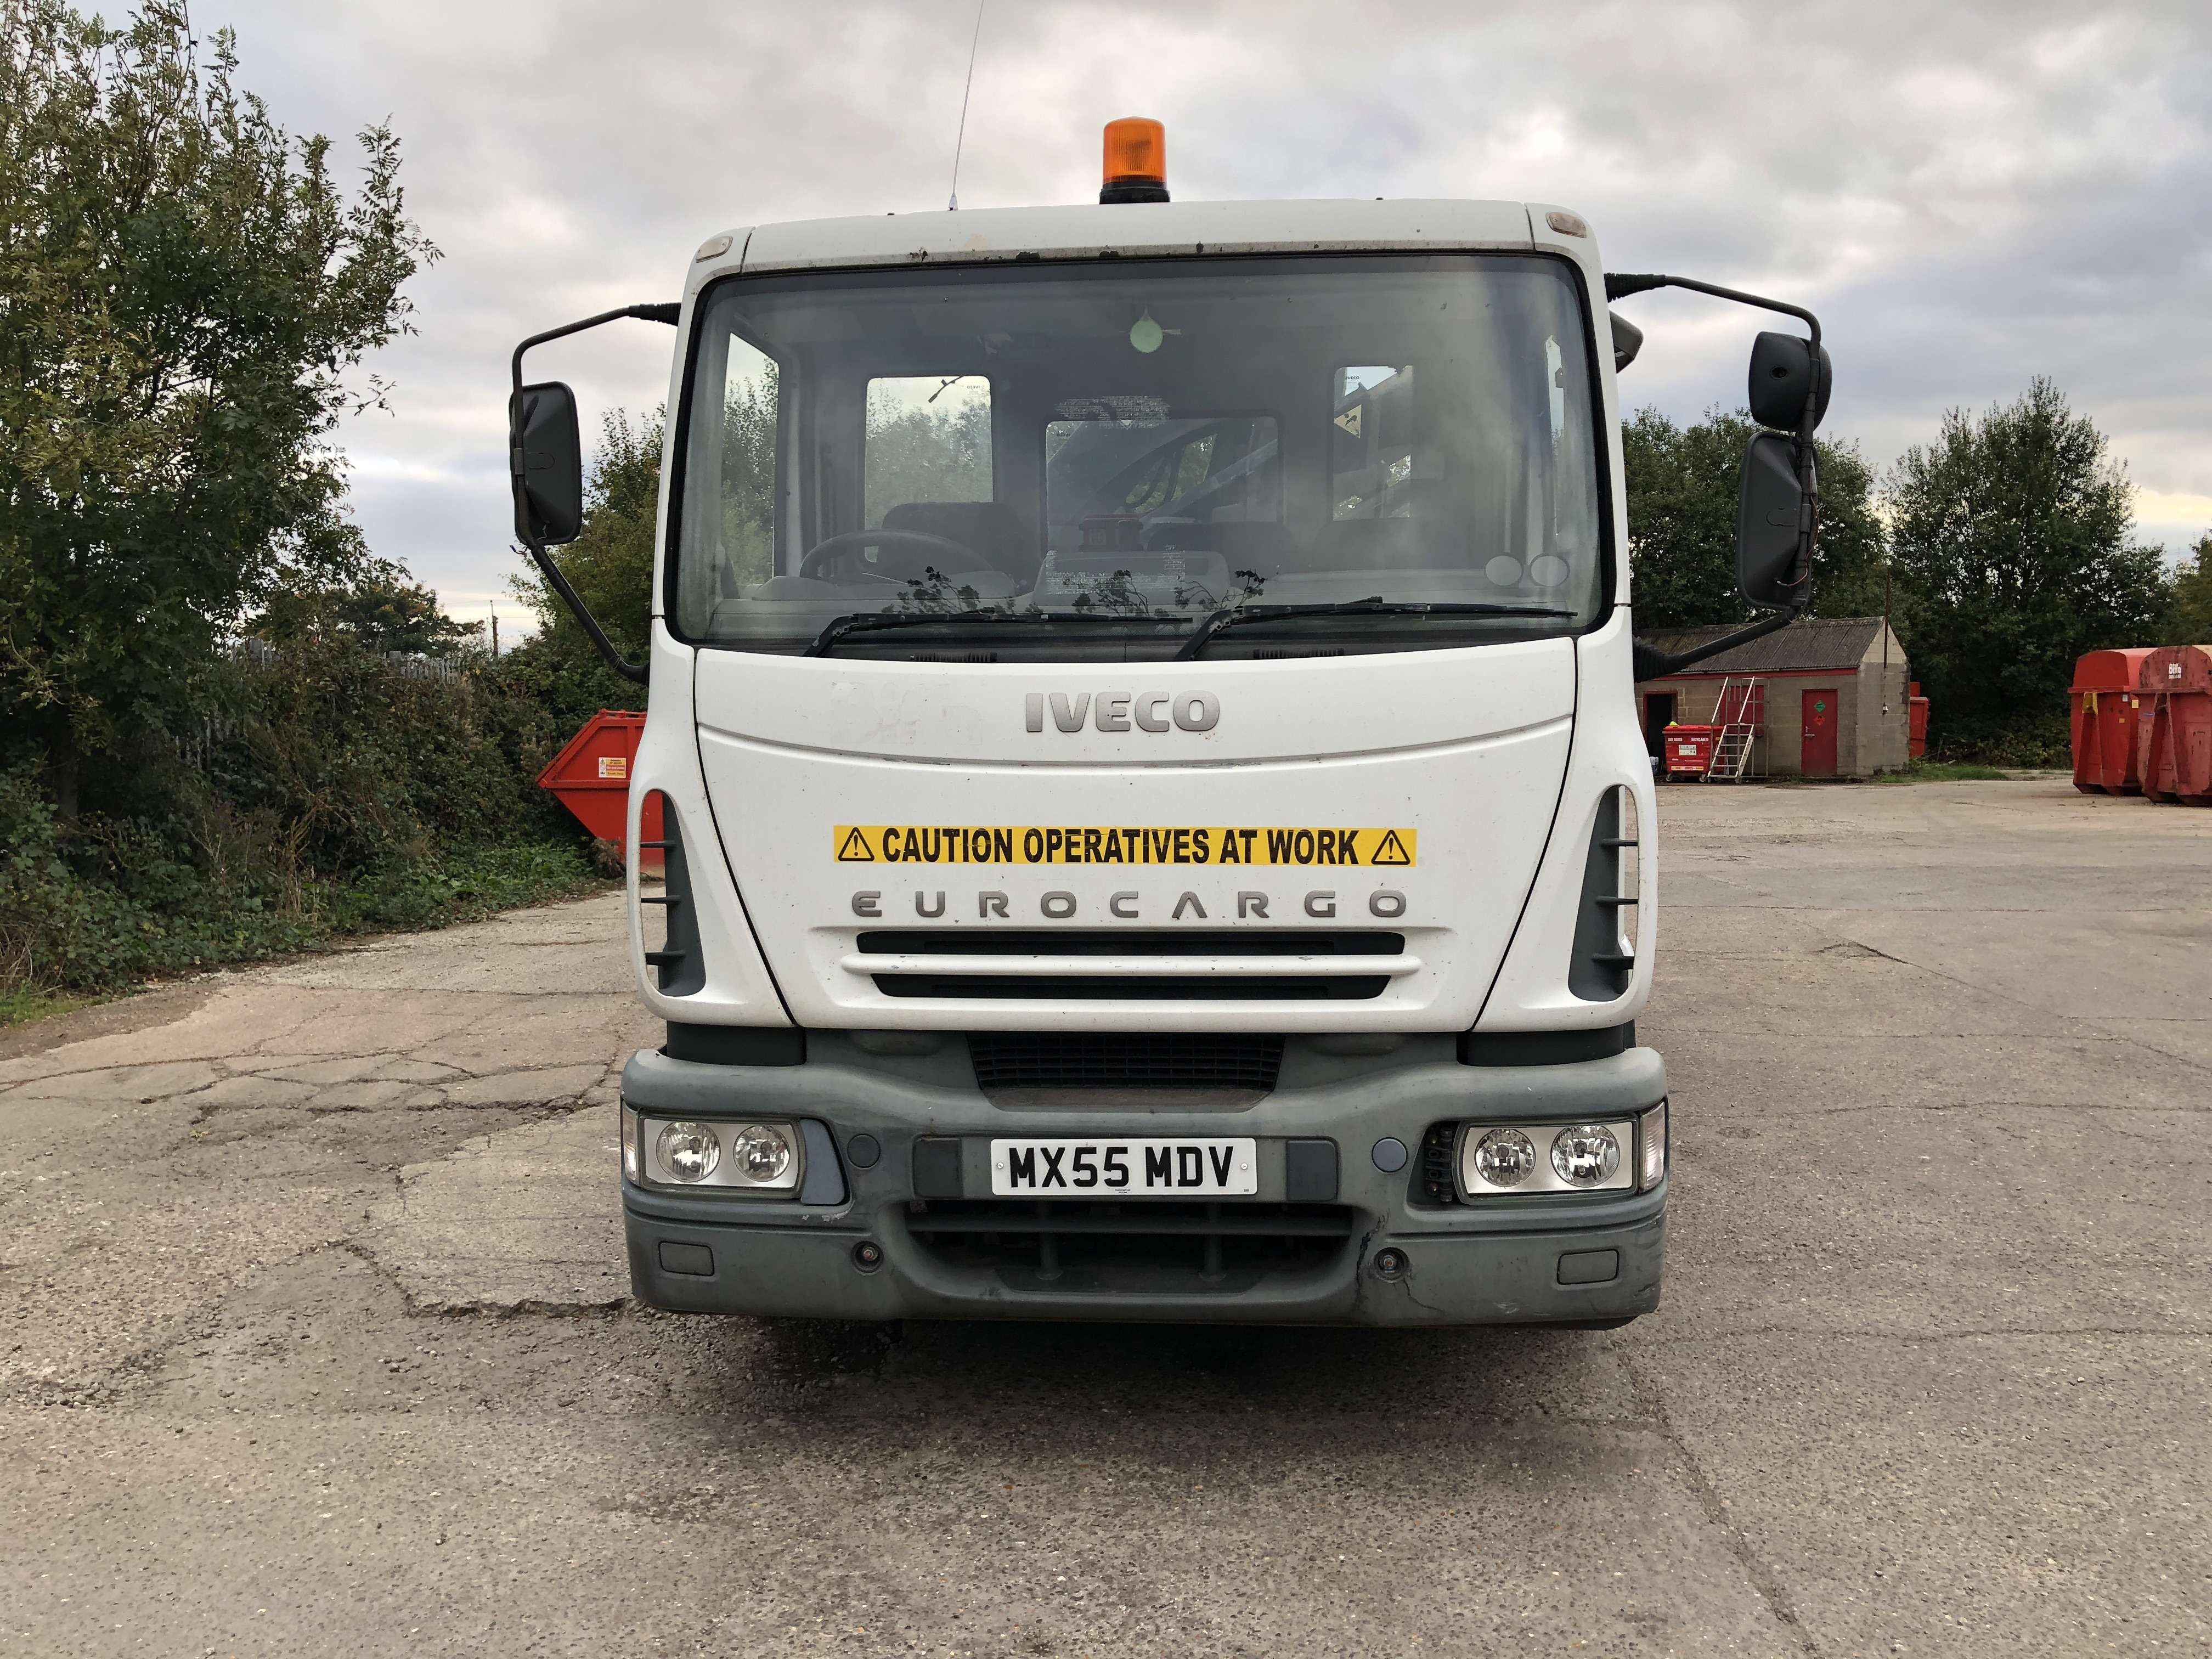 2005 Iveco dropside truck for sale 2